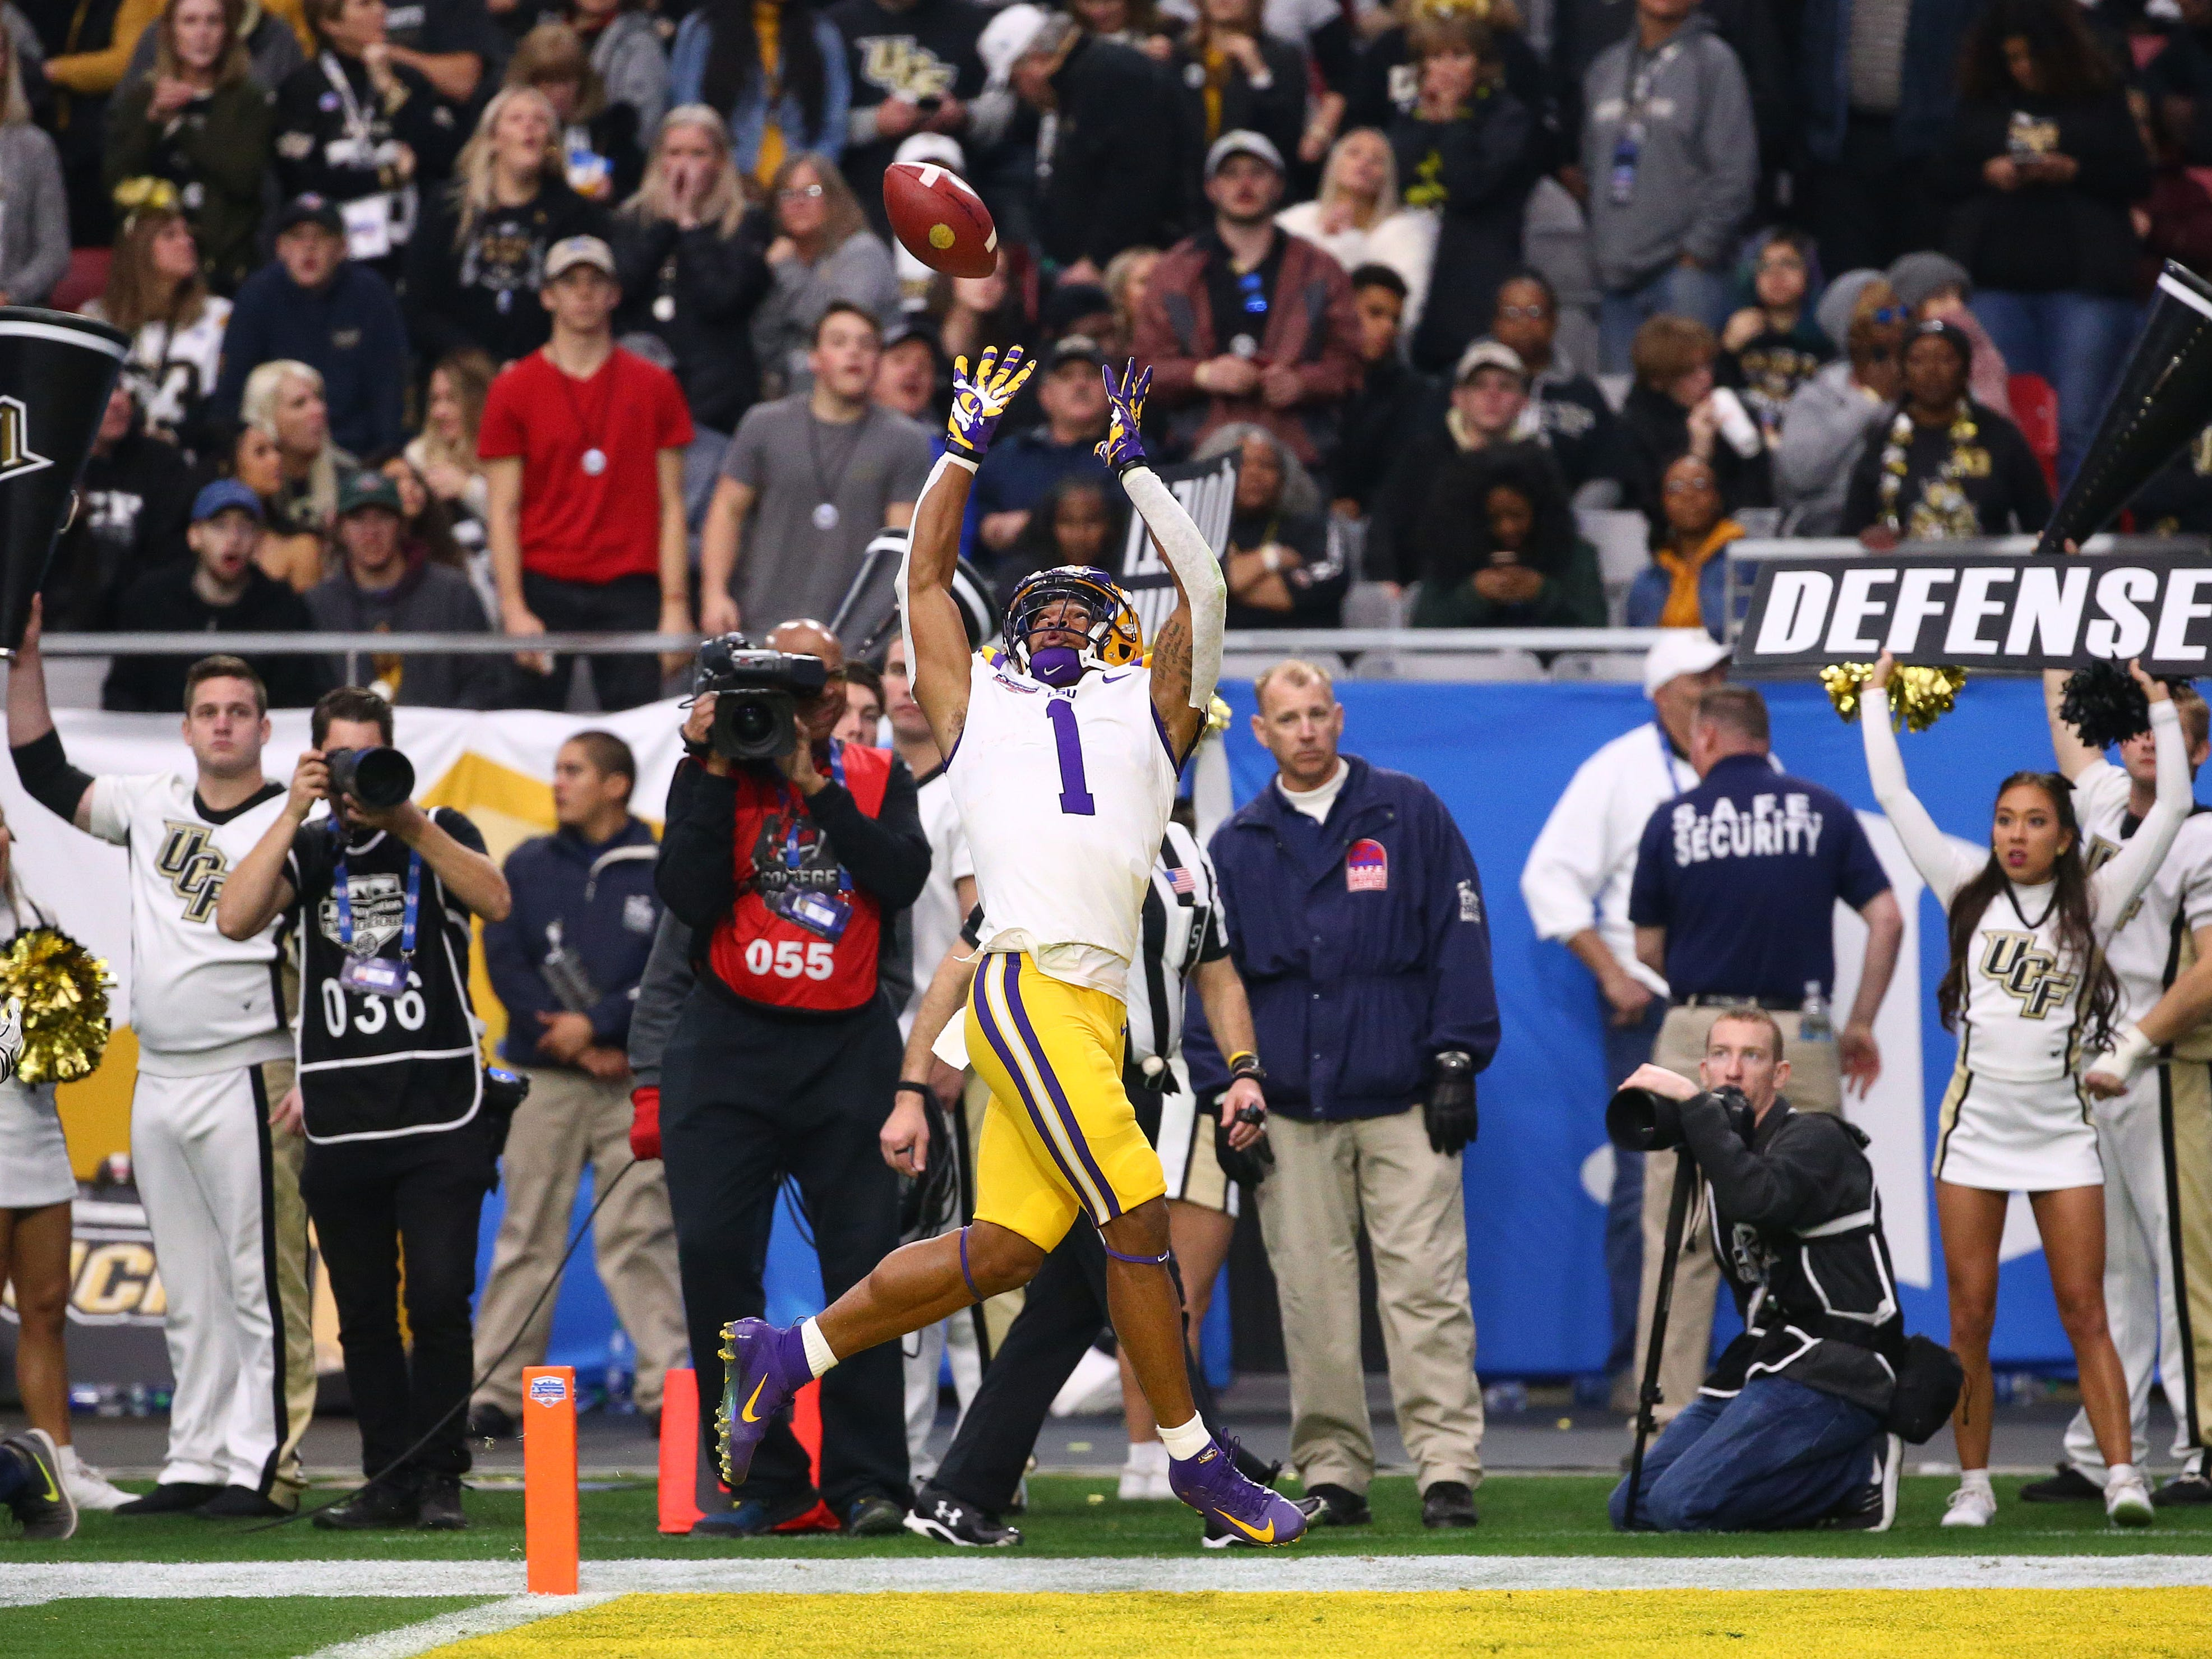 LSU Tigers wide receiver Ja'Marr Chase (1) makes a touchdown catch against the UCF Knights in the second half at the Fiesta Bowl on Jan. 1 at State Farm Stadium.